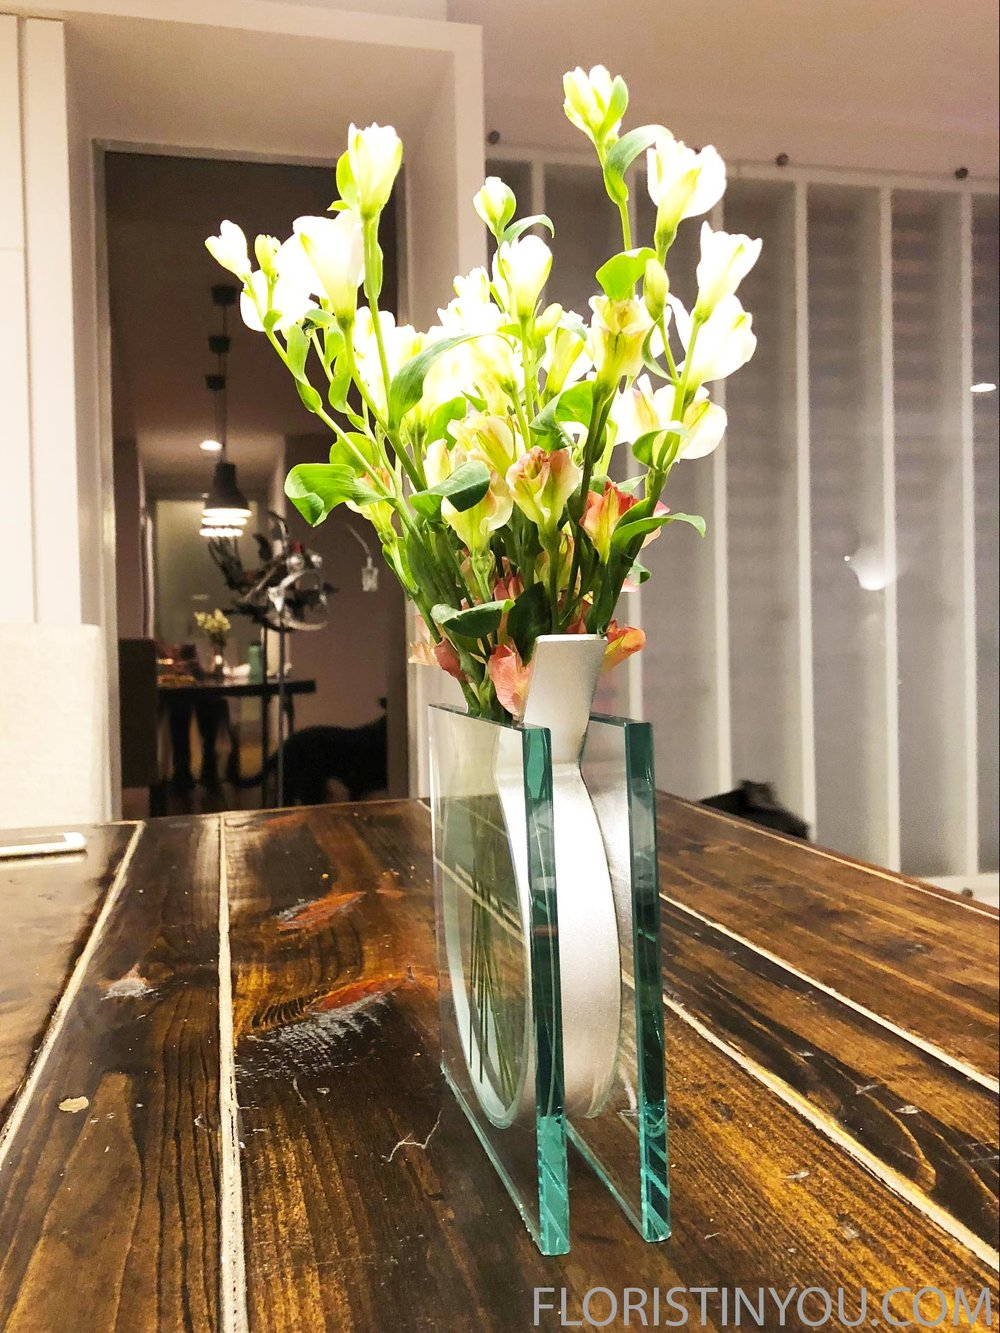 This is a side view of the MoMA Ribbon Vase on the dining table.